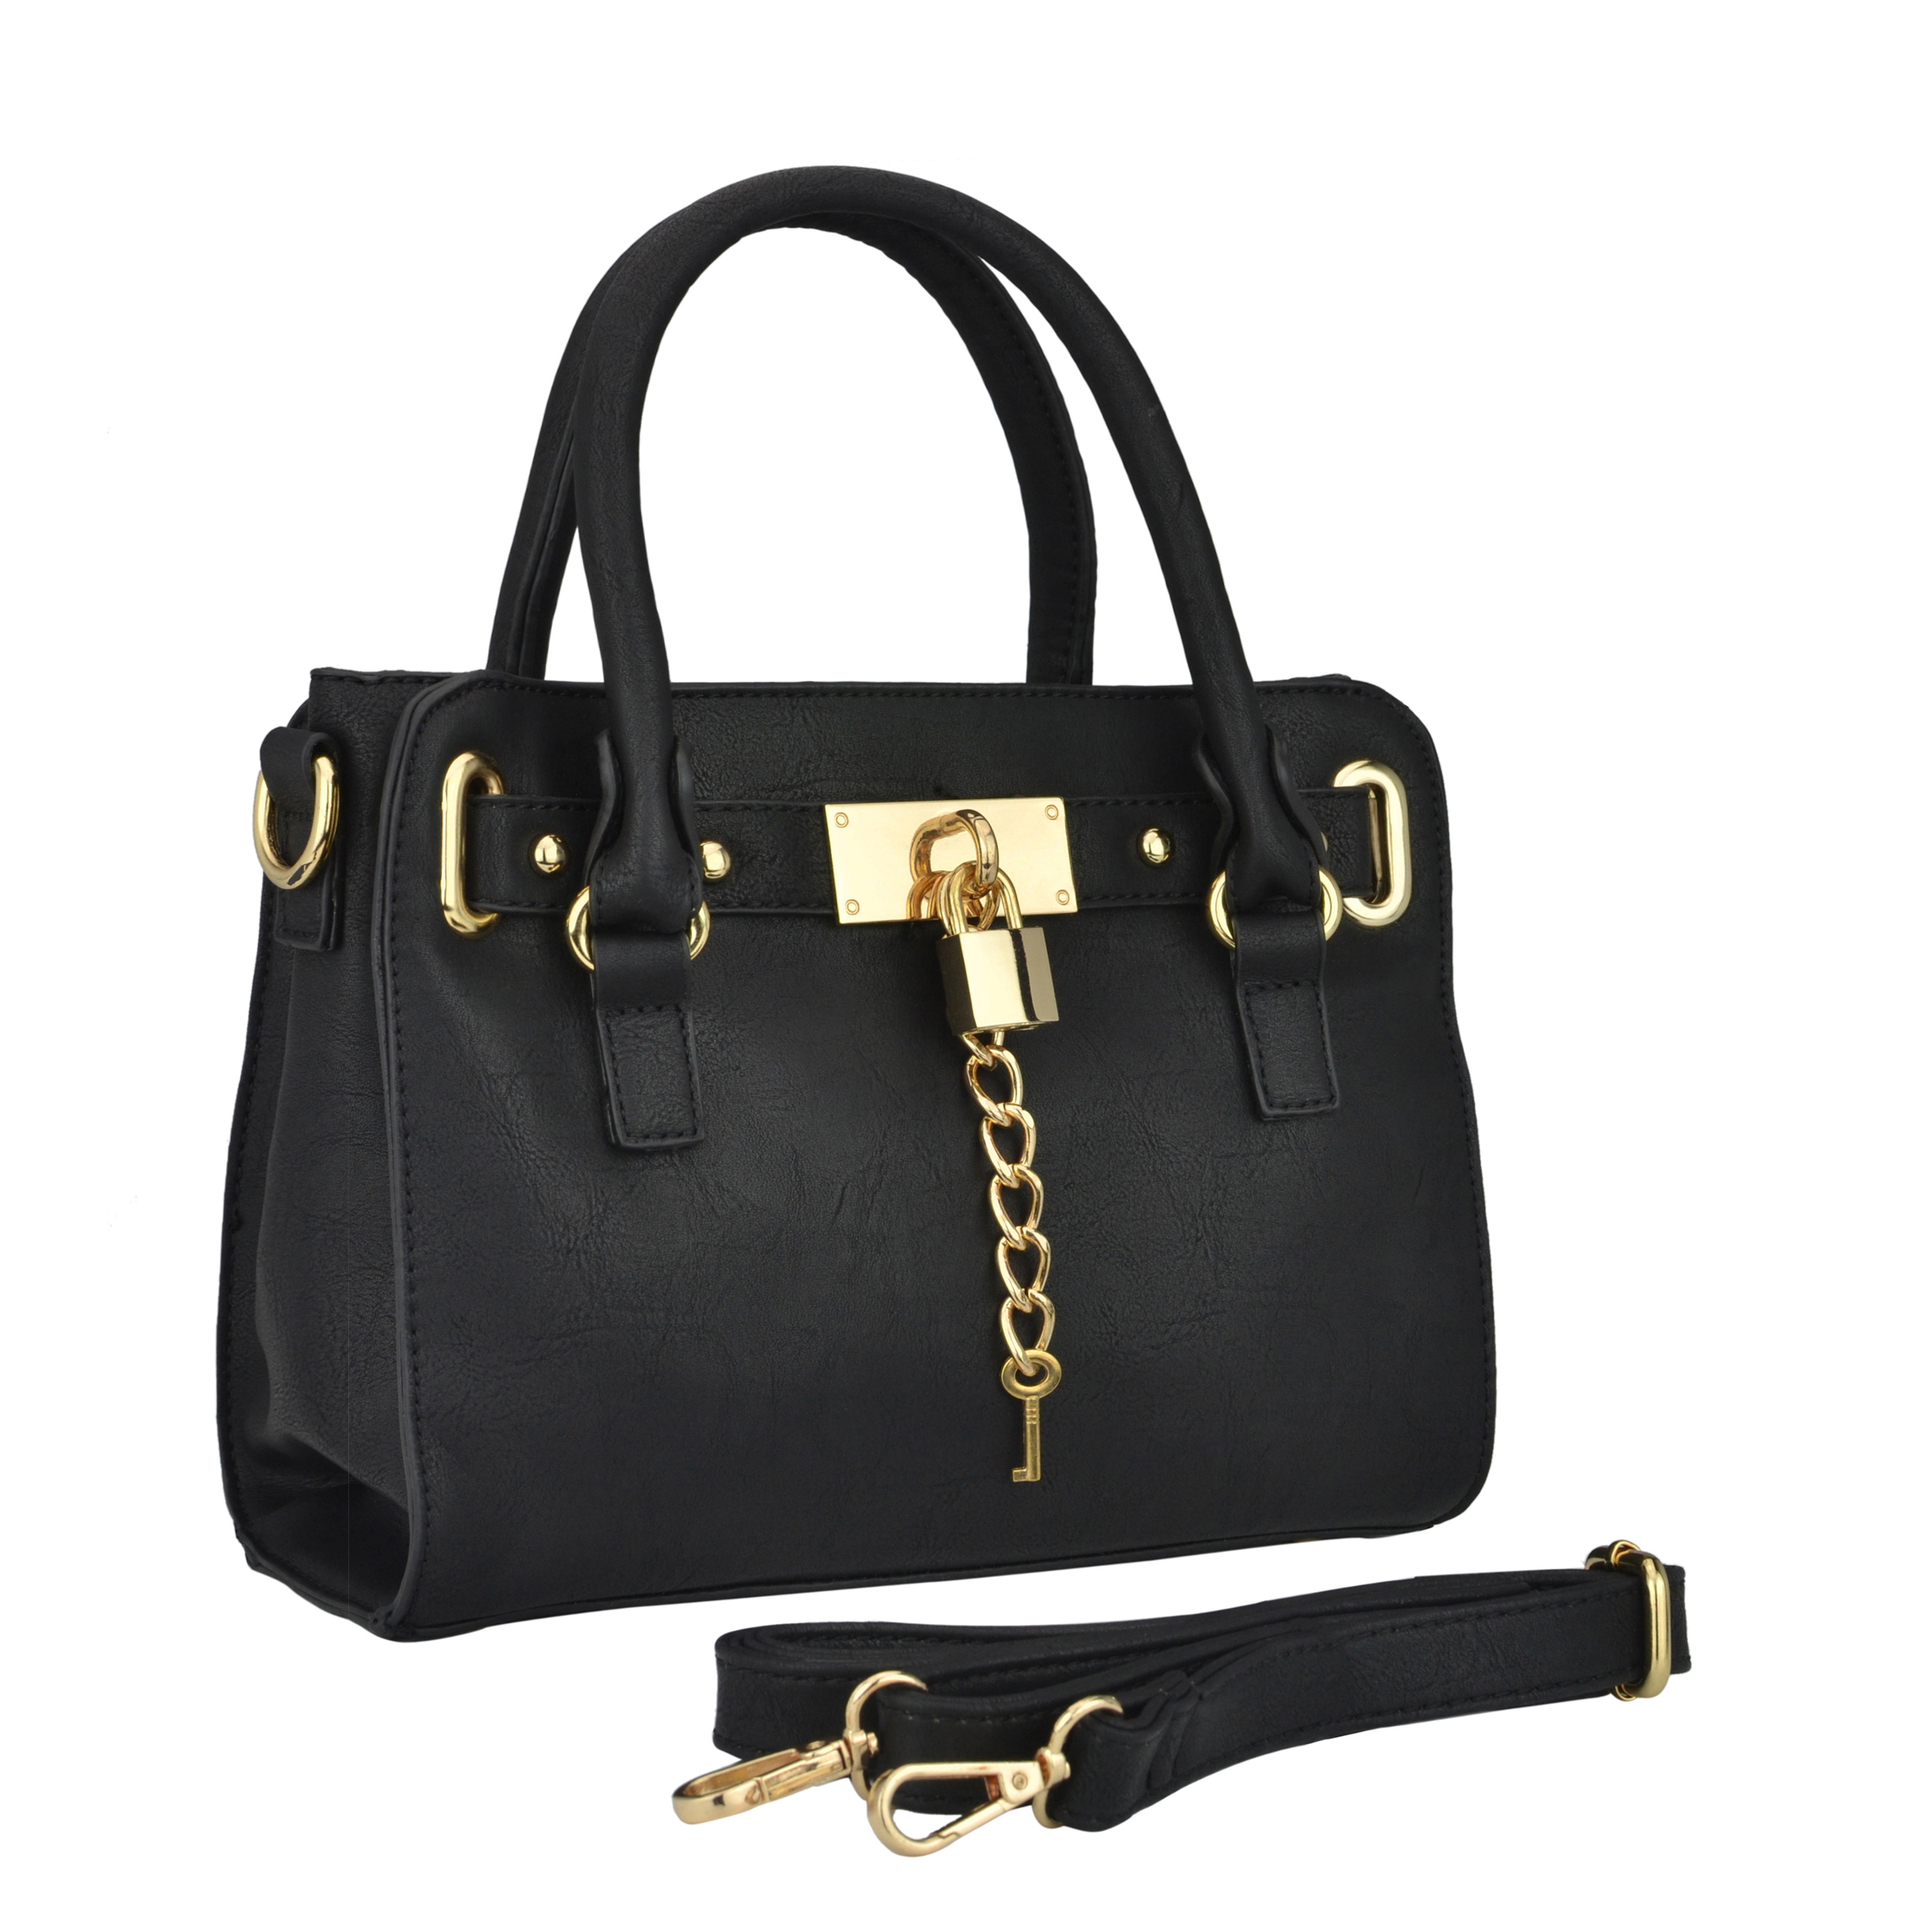 NERYS black top handle tote purse main image